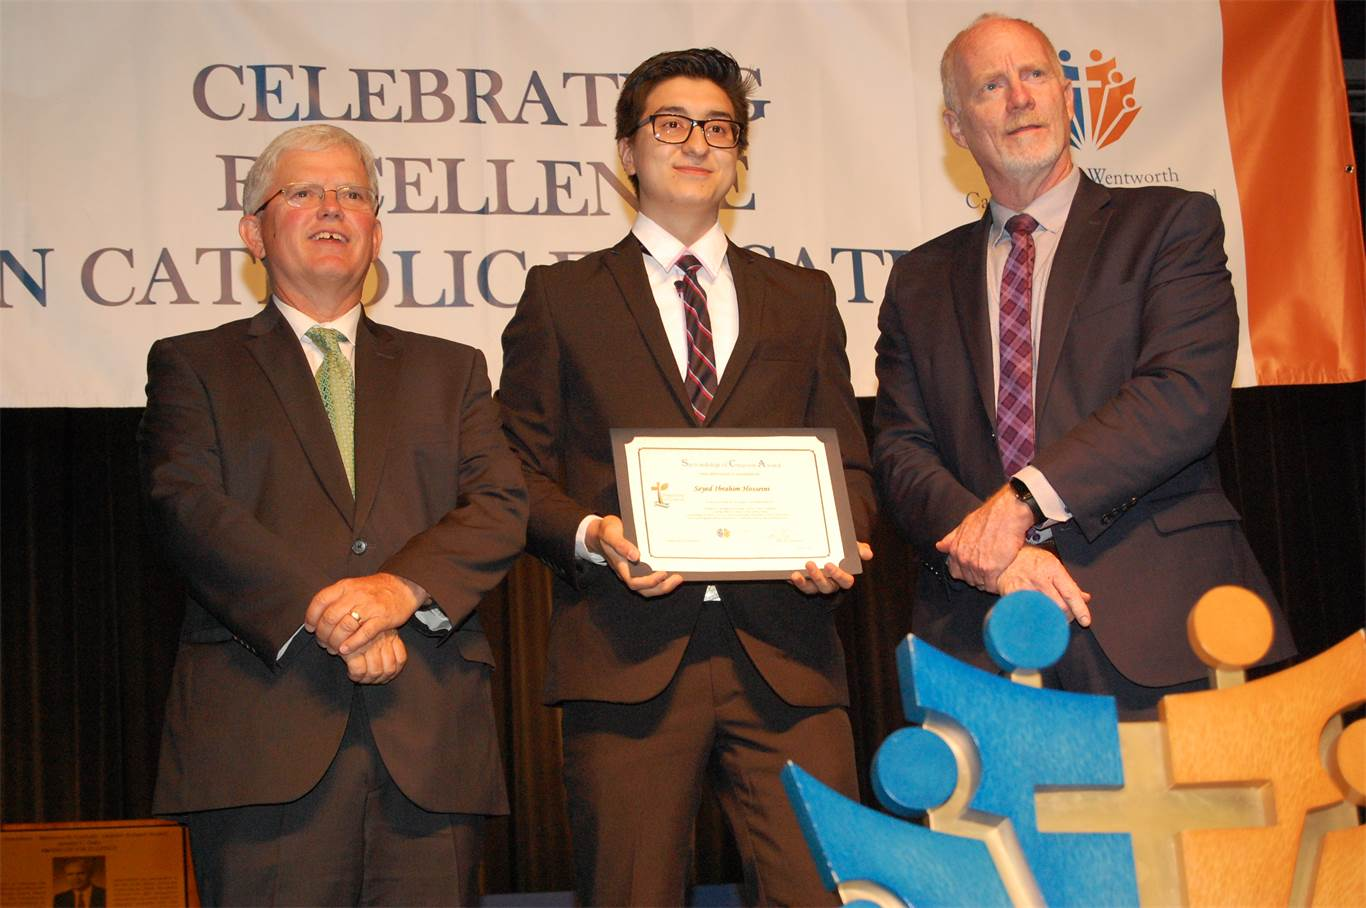 Chairperson Patrick Daly, left, and Director of Education David Hansen present Seyed Ibrahim Hosseini from Cardinal Newman CSS with the Board's Stewardship of Creation Award for his work to promote a more environmentally sustainable school community.